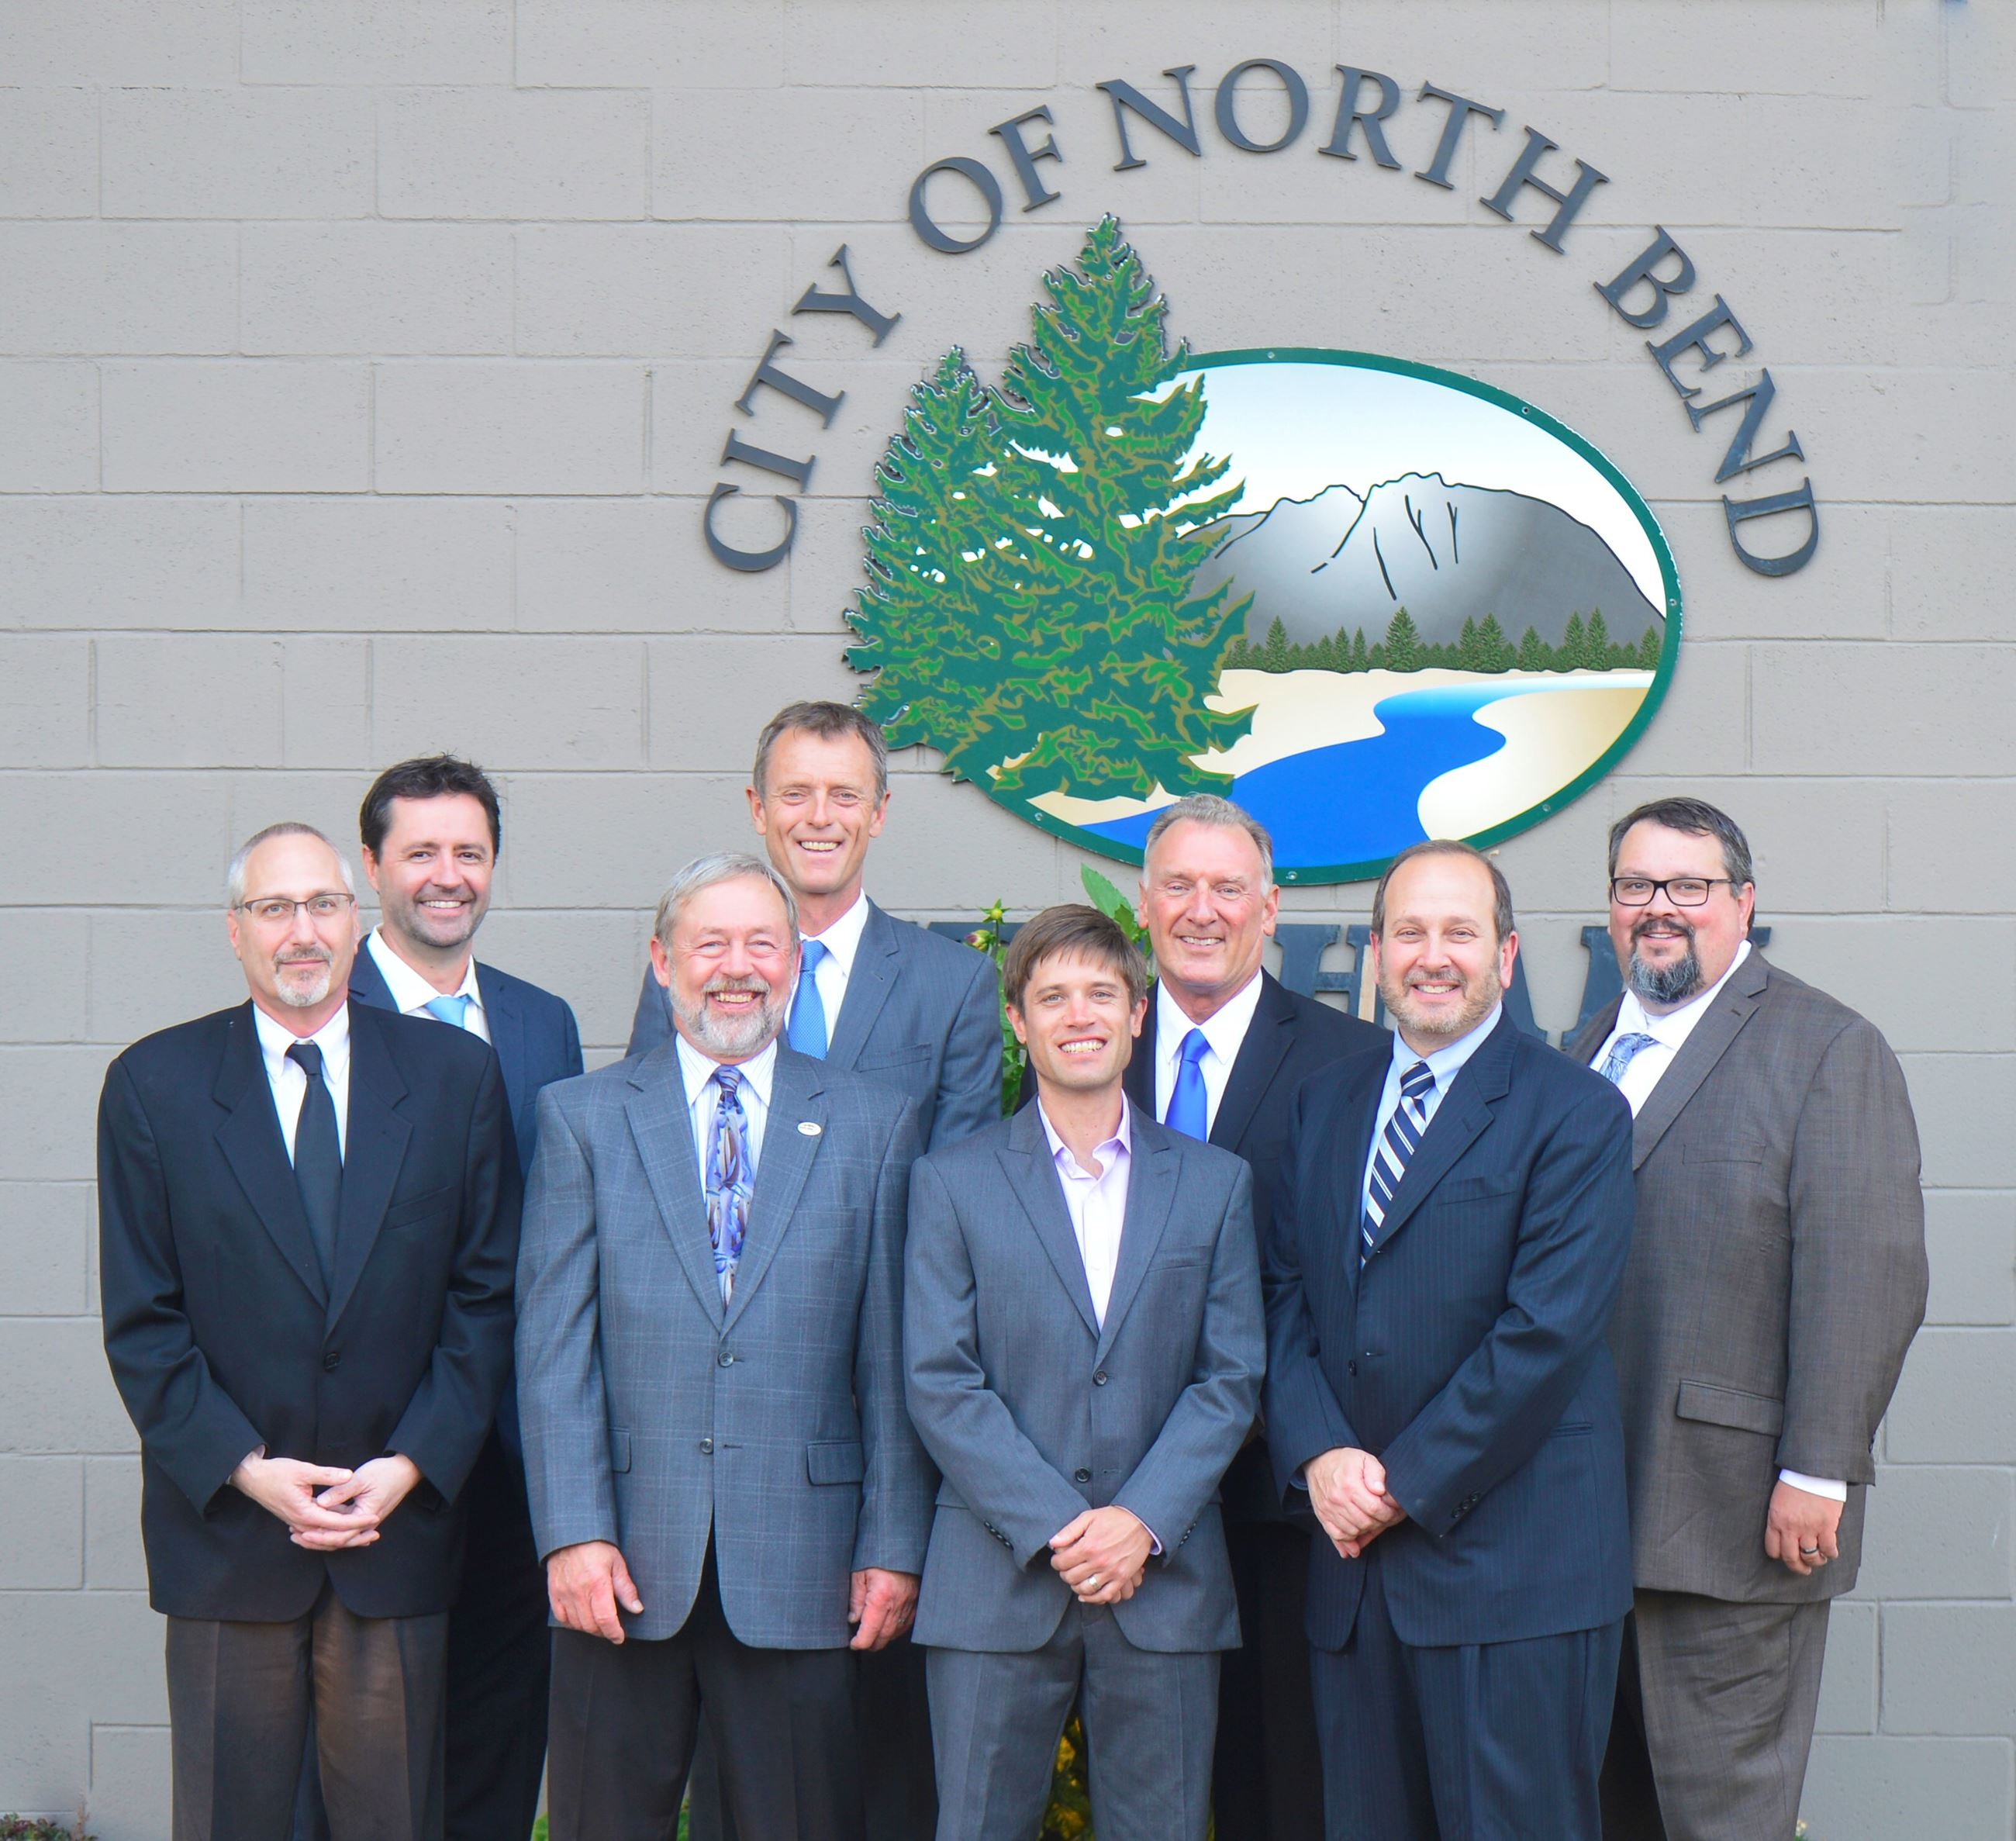 North Bend Mayor and Councilmembers 2018